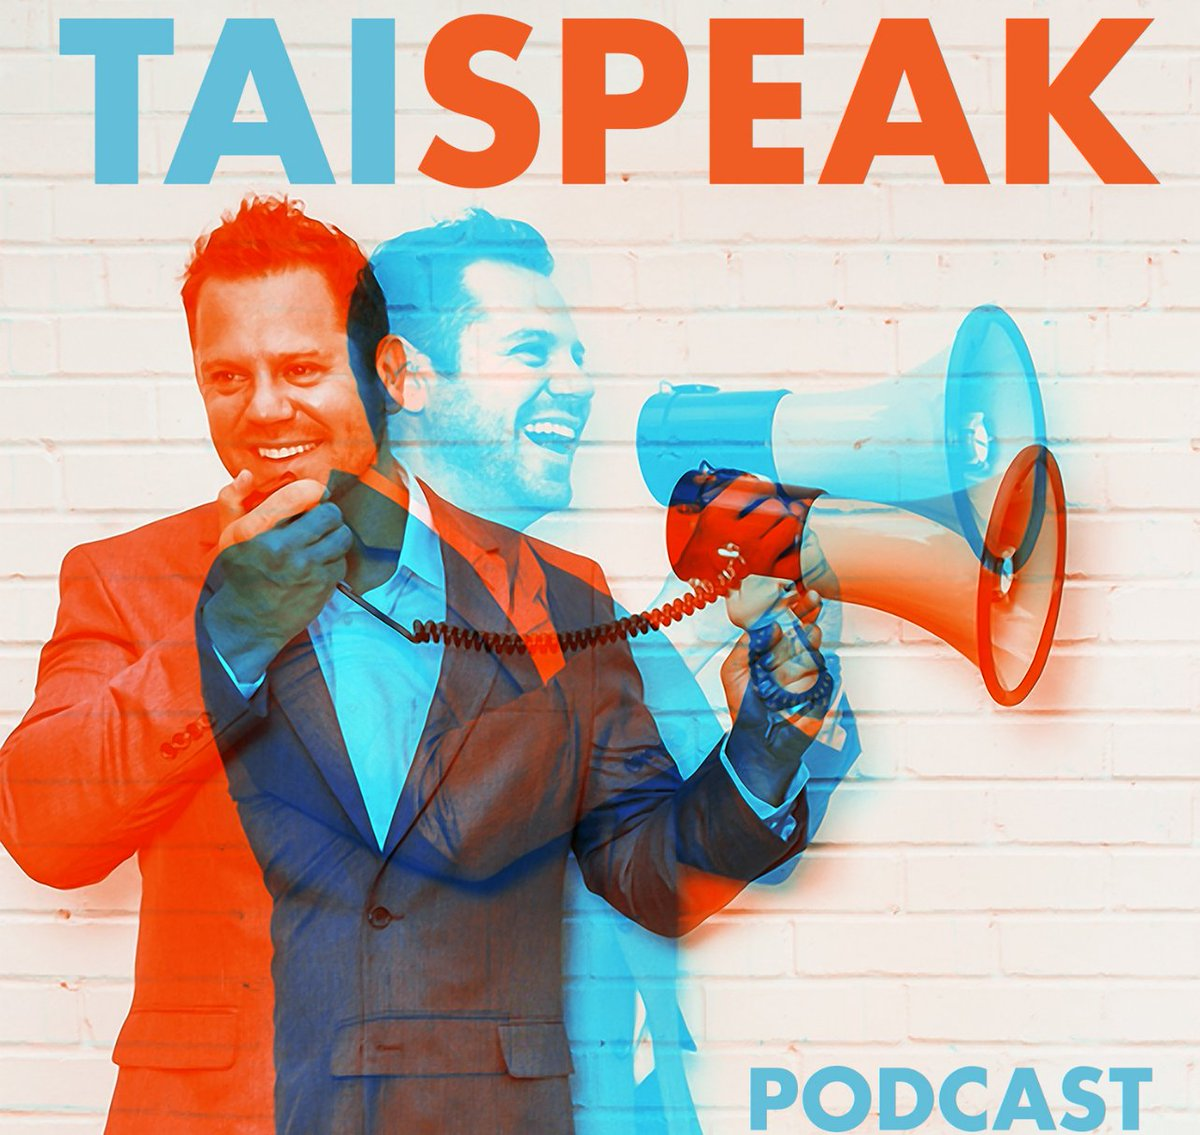 Check out @taianderson #TaiSpeak podcast talking #leadership #branding and #marketing by 4x #Grammy winning artist. https://t.co/vAQqgPFx5h